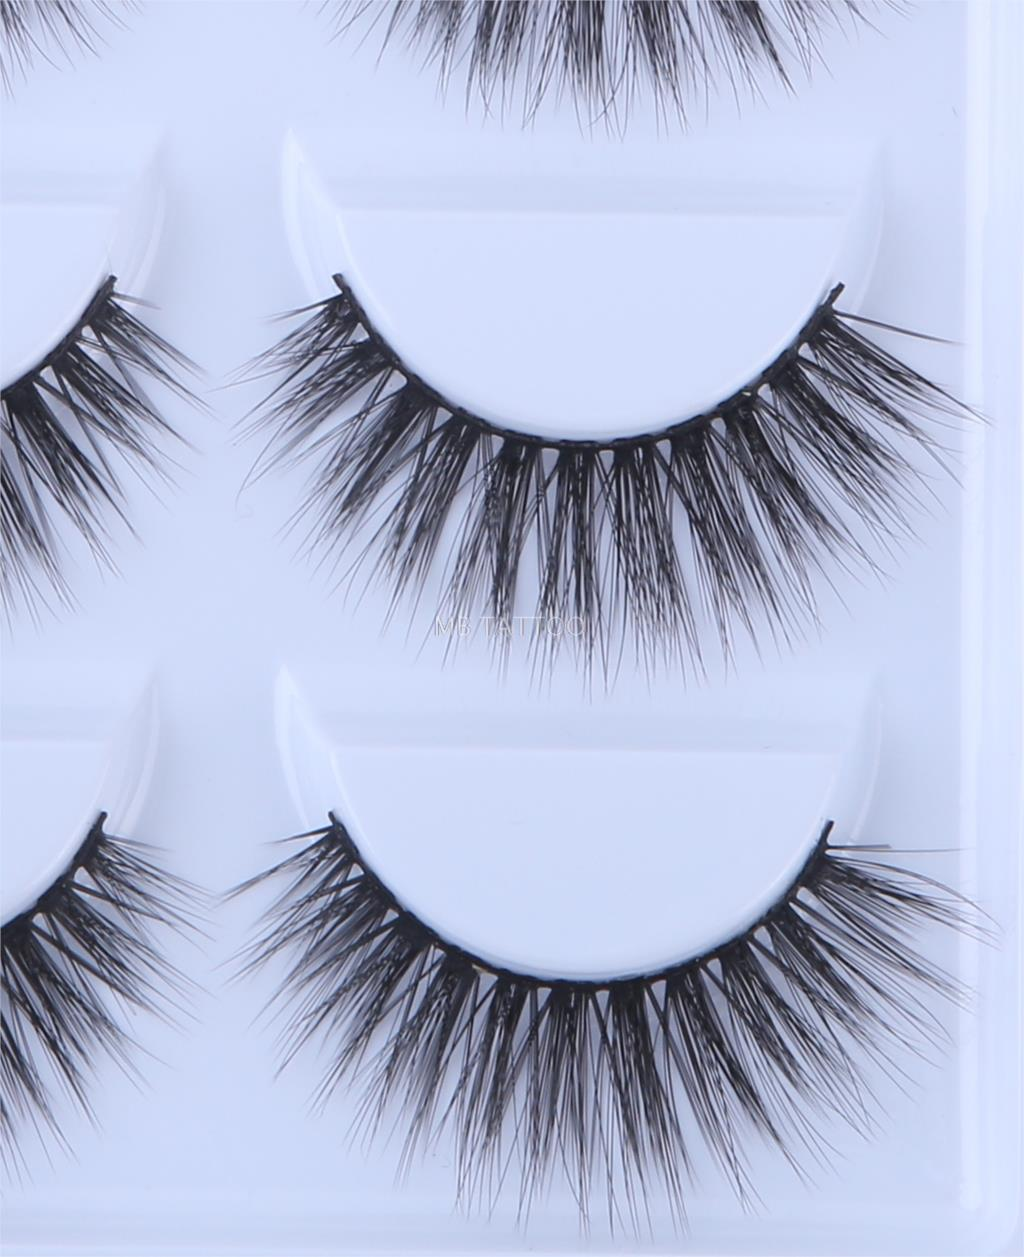 HTB16.gHQ6DpK1RjSZFrq6y78VXal New 3D 5 Pairs Mink Eyelashes extension make up natural Long false eyelashes fake eye Lashes mink Makeup wholesale Lashes